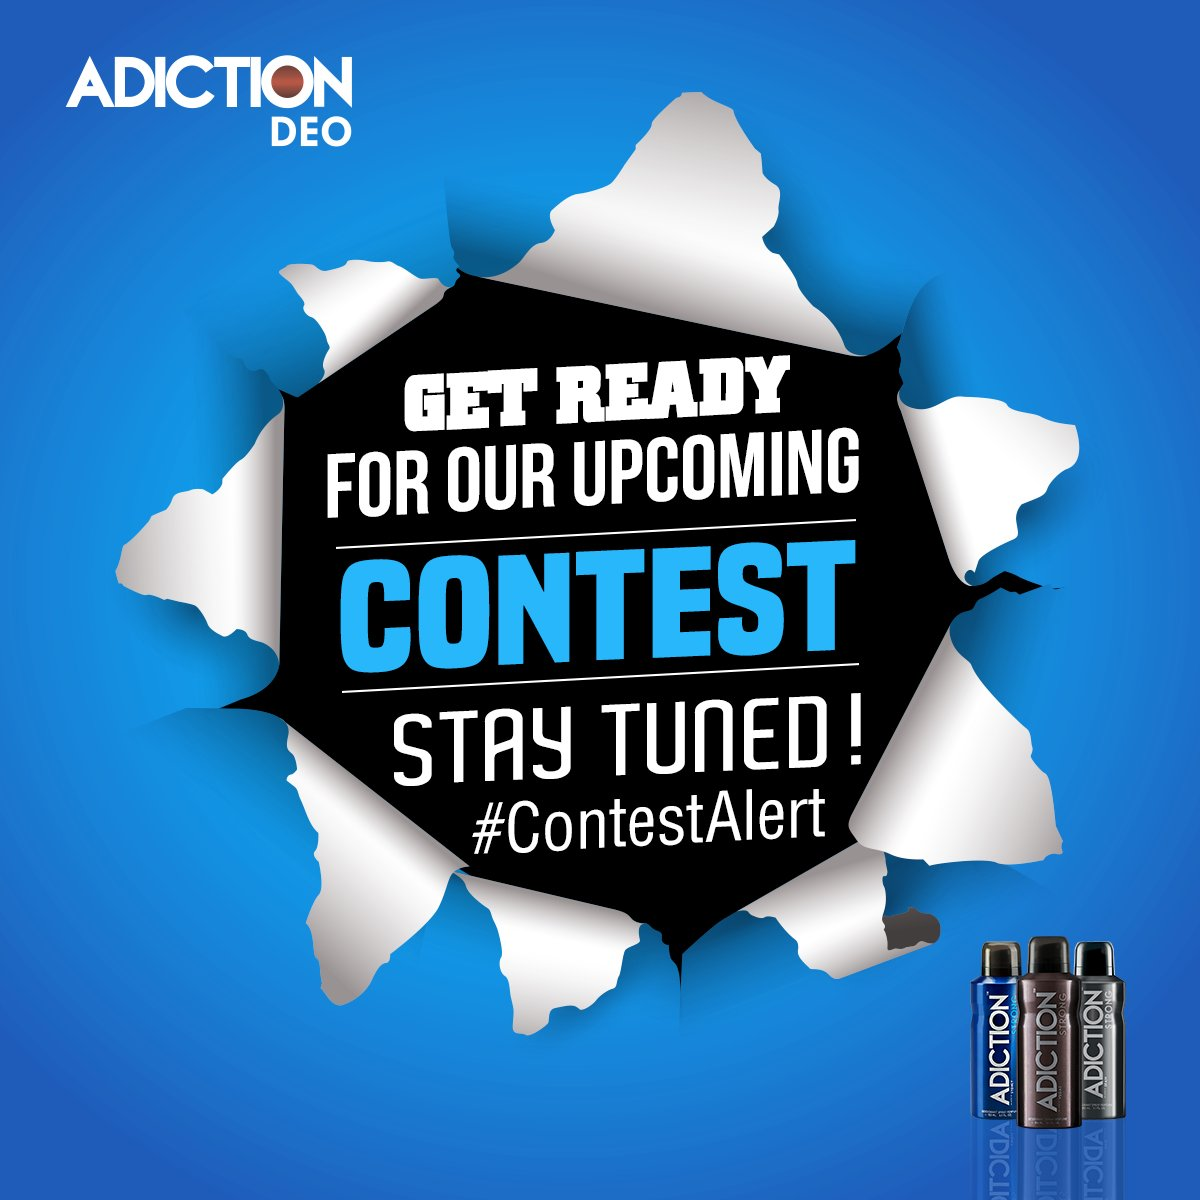 Awesome stuff coming up. #Adiction #Contest #ContestAlert #CelebrateFriendship https://t.co/5bf2fG8oBd